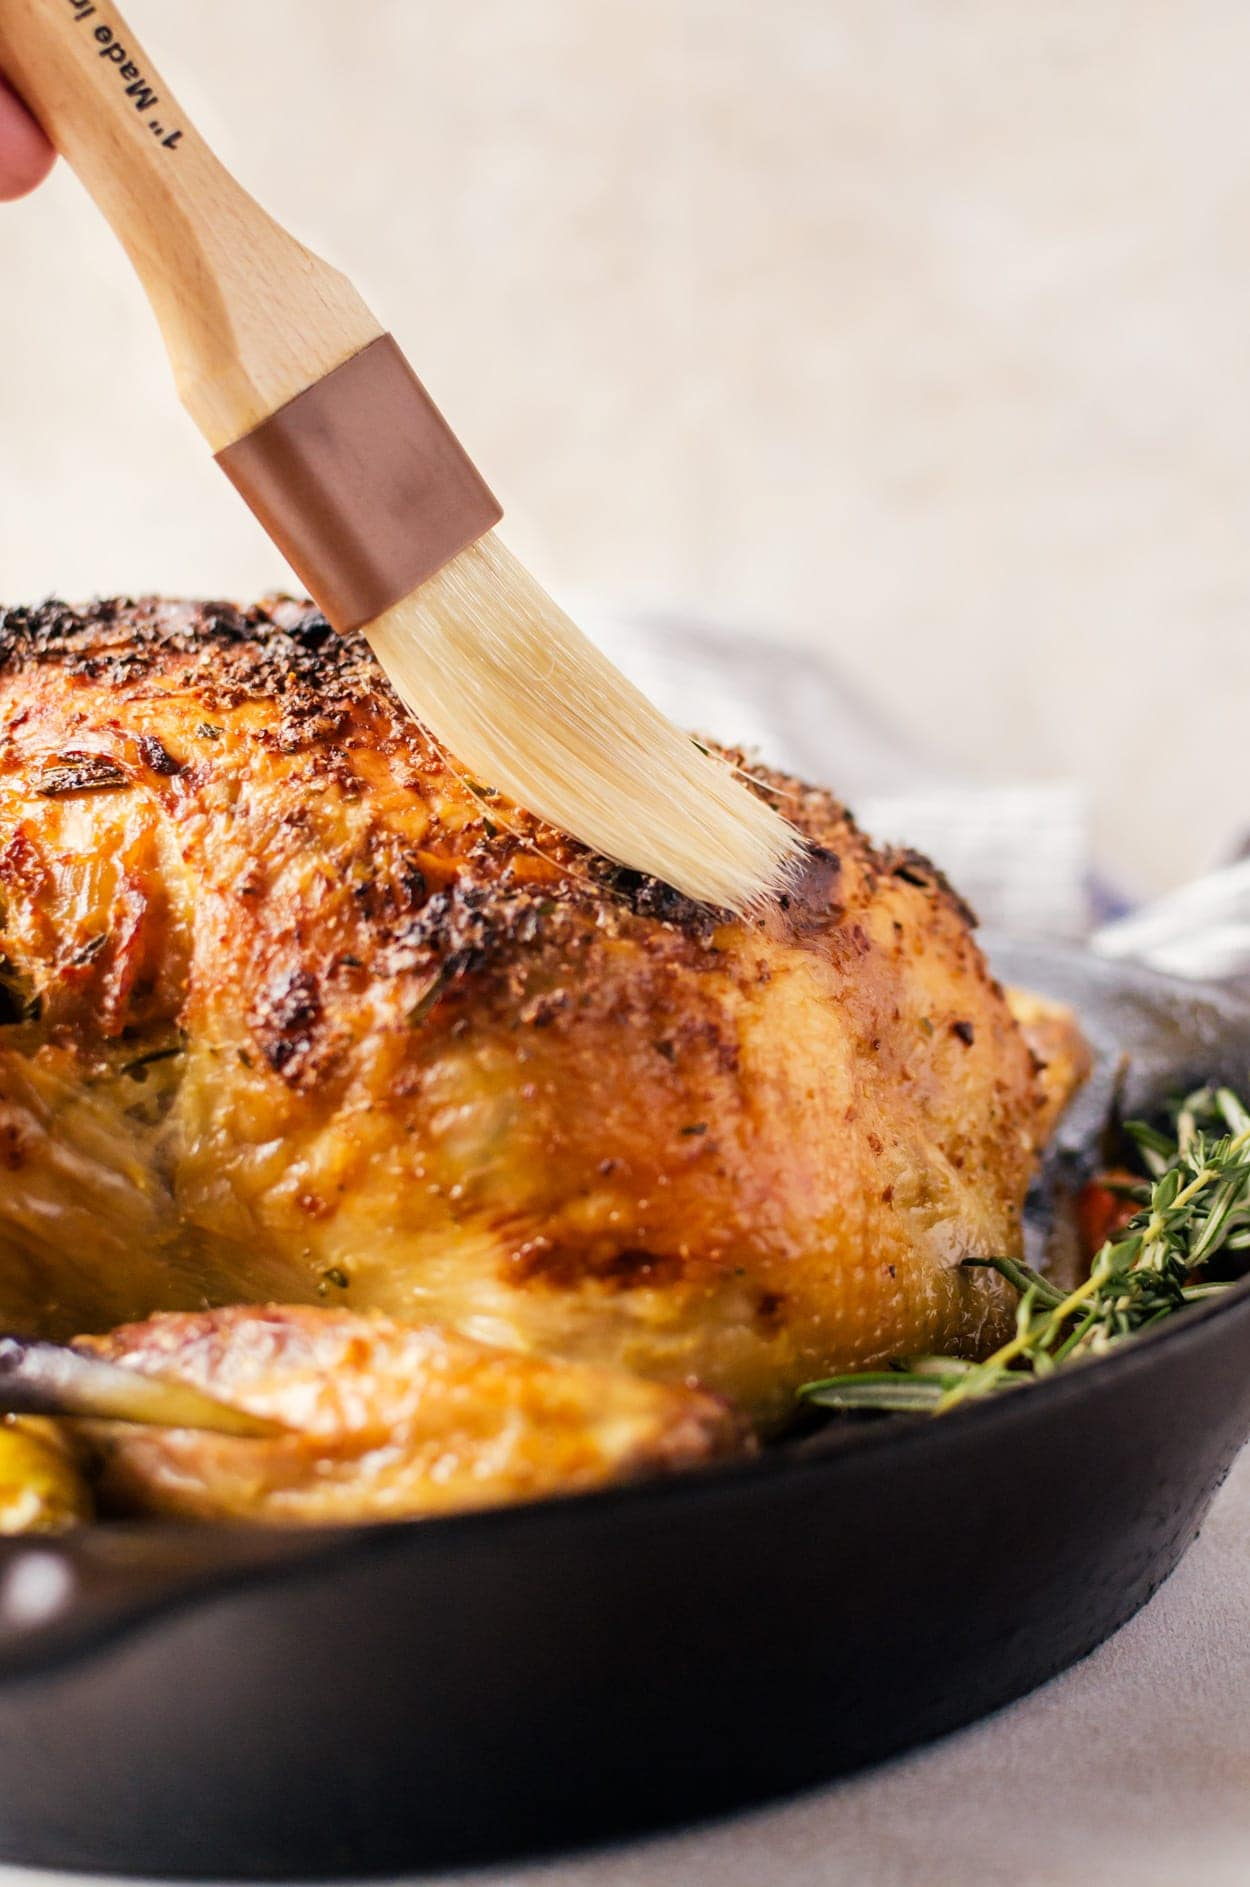 A juicy garlic roasted chicken that is packed to the brim with flavor.